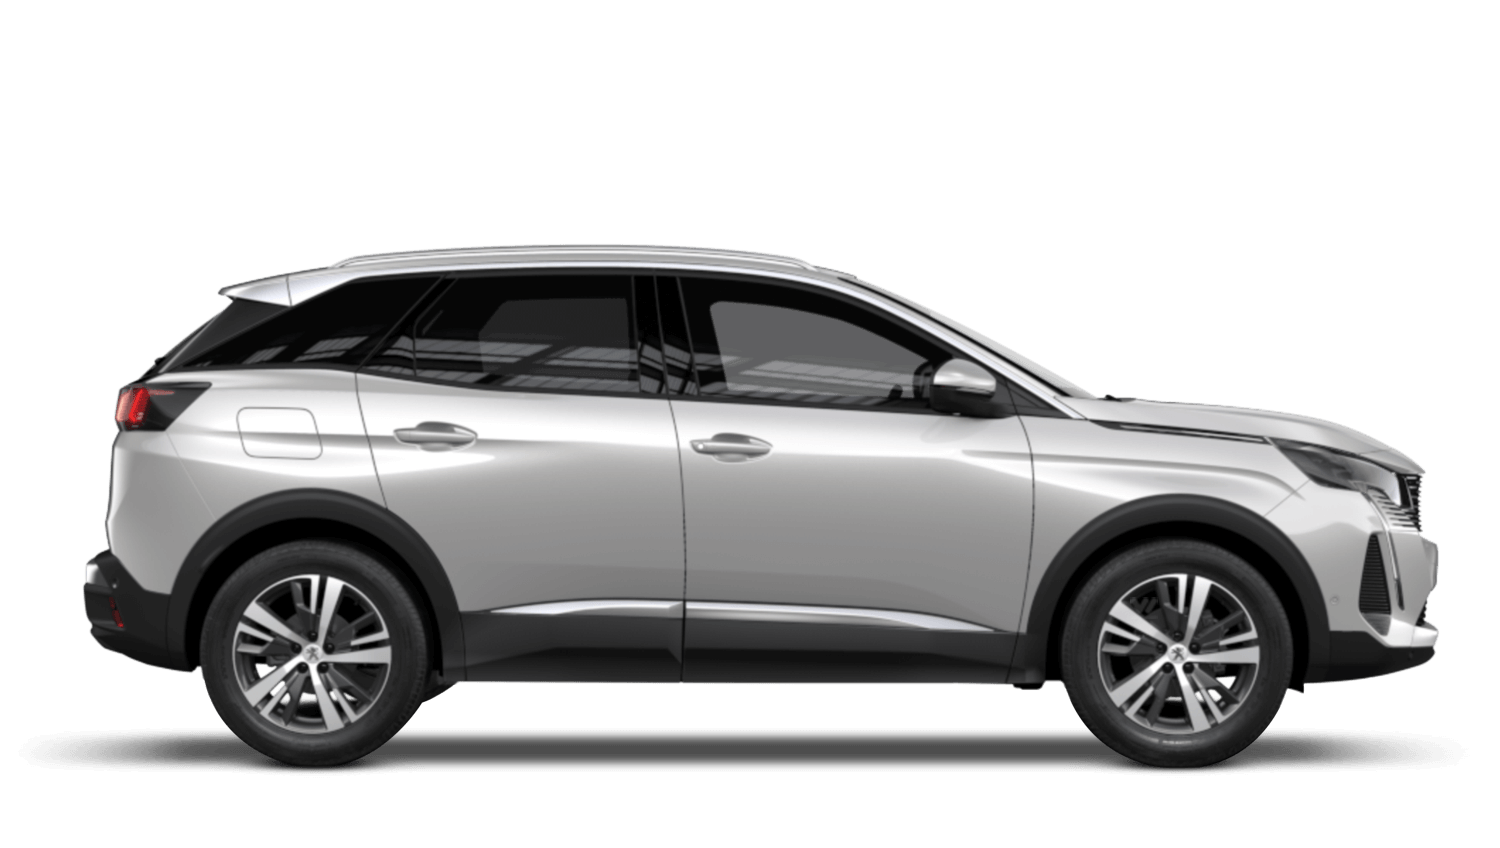 Pearlescent White New Peugeot 3008